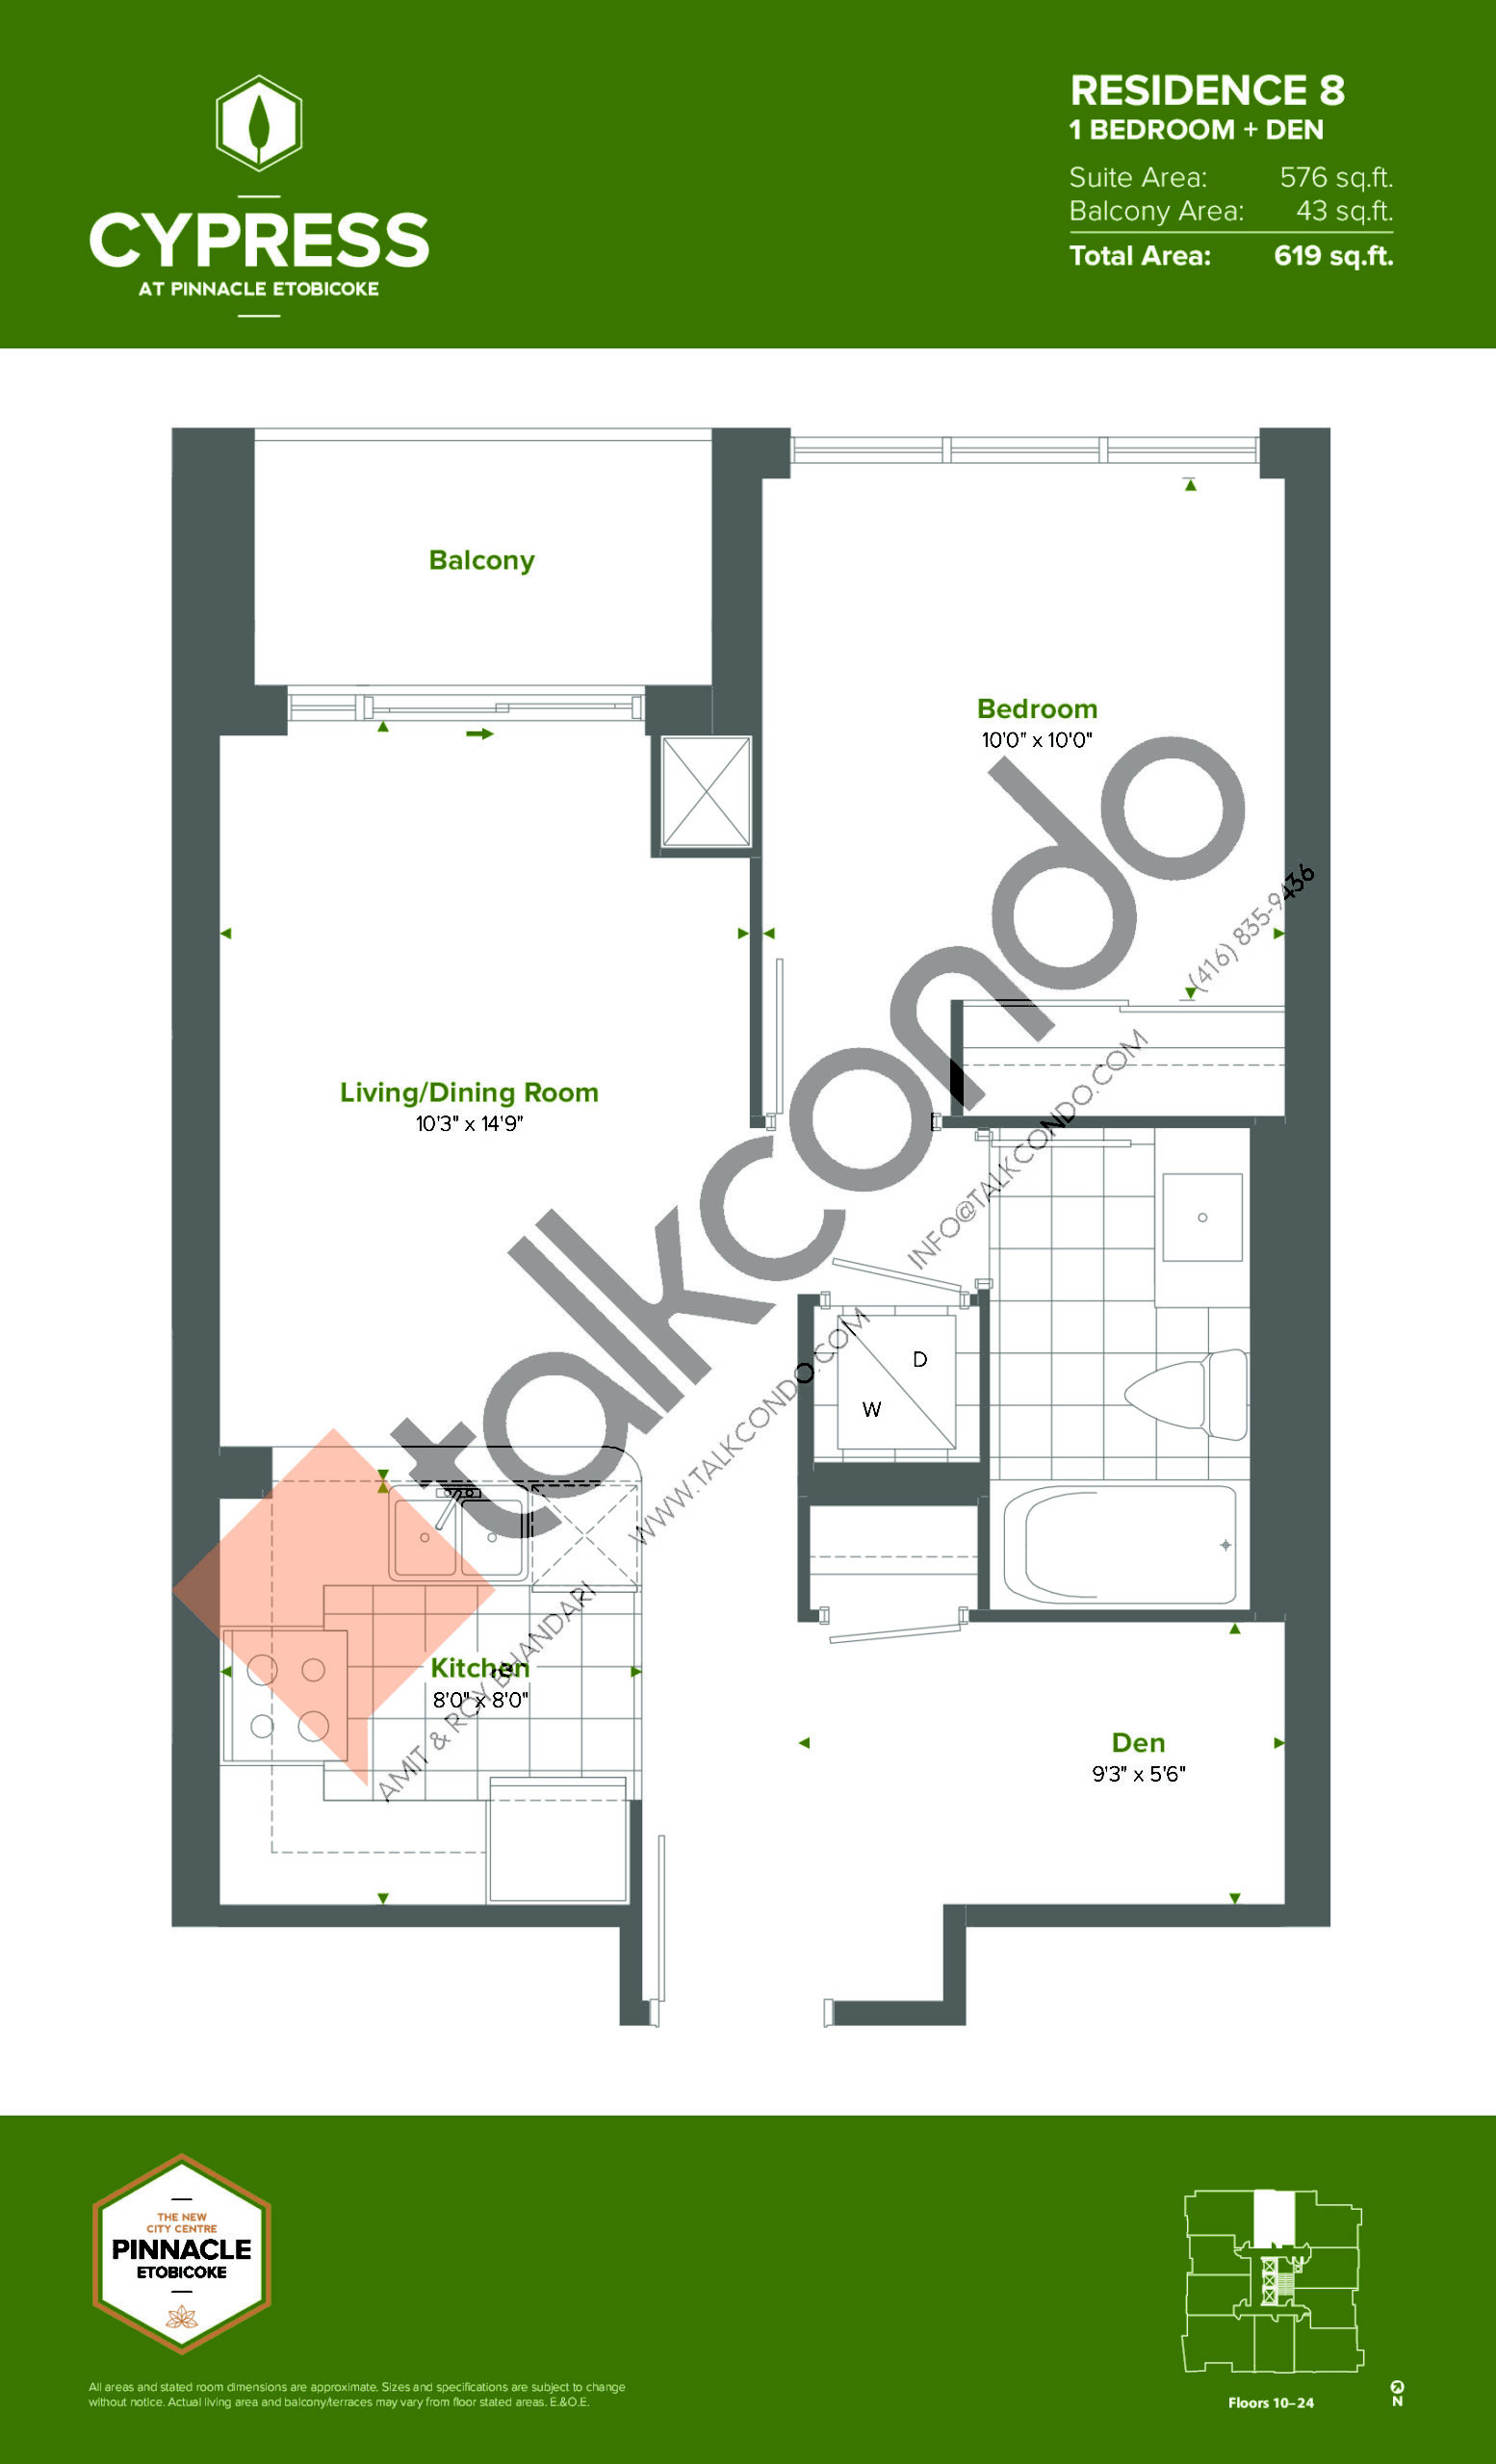 Residence 8 (Tower) Floor Plan at Cypress at Pinnacle Etobicoke - 576 sq.ft